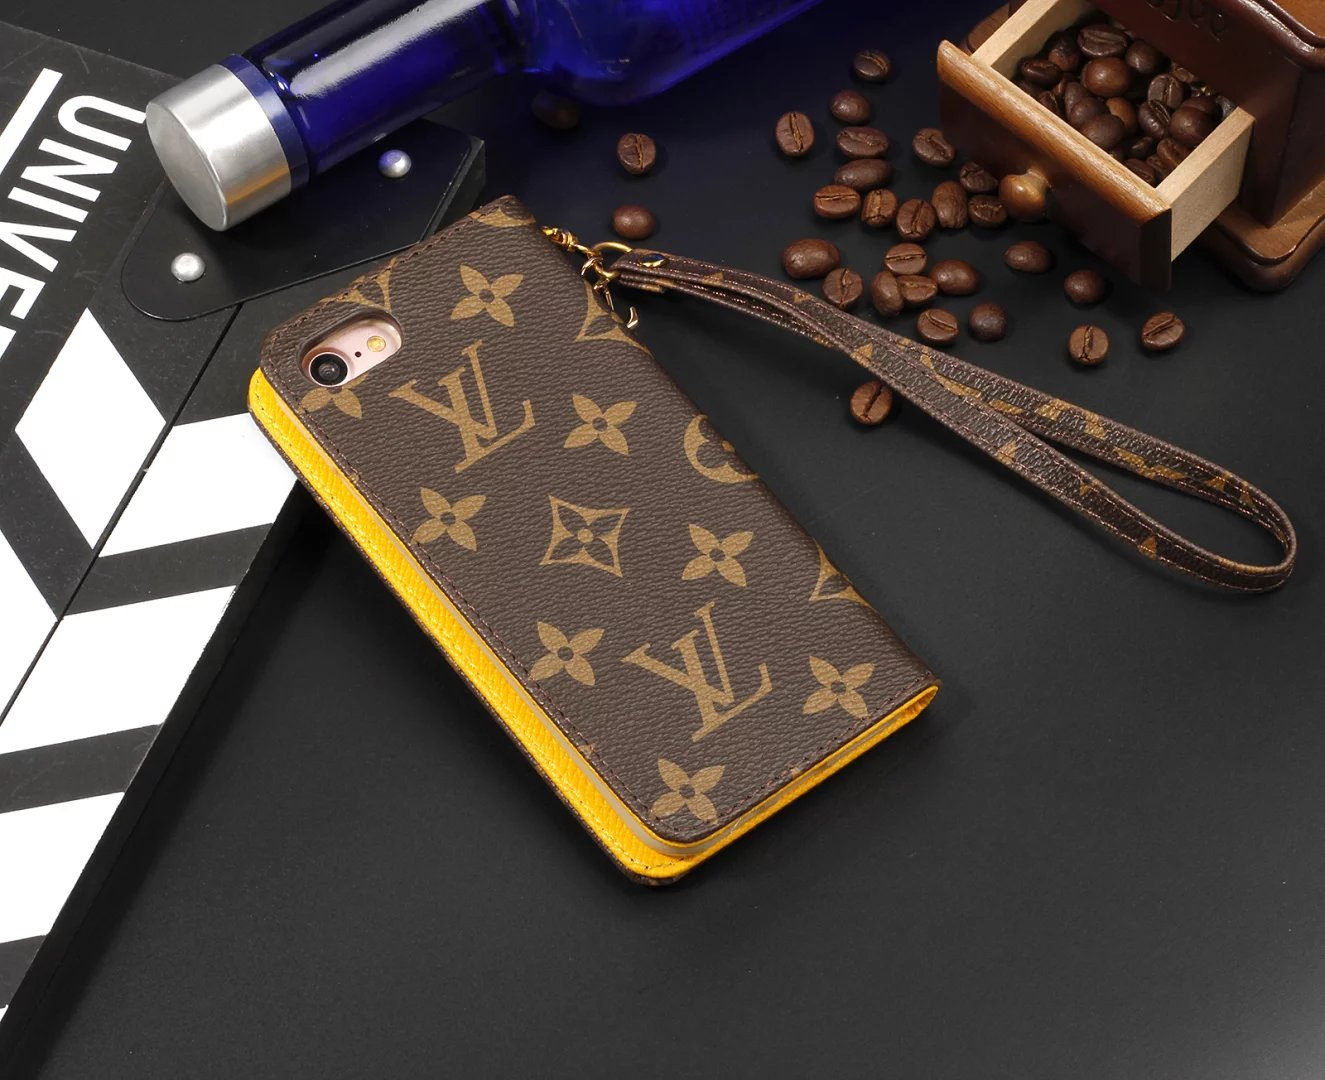 iphone 8 Plus good cases iphone 8 Plus cases cool designs Louis Vuitton iphone 8 Plus case case cover for iphone 8 Plus phone cover iphone 8 Plus cute phone case iPhone 8 Plus iPhone 8 Plus battery capacity mah iPhone 8 Plus covers designer customize your cell phone case